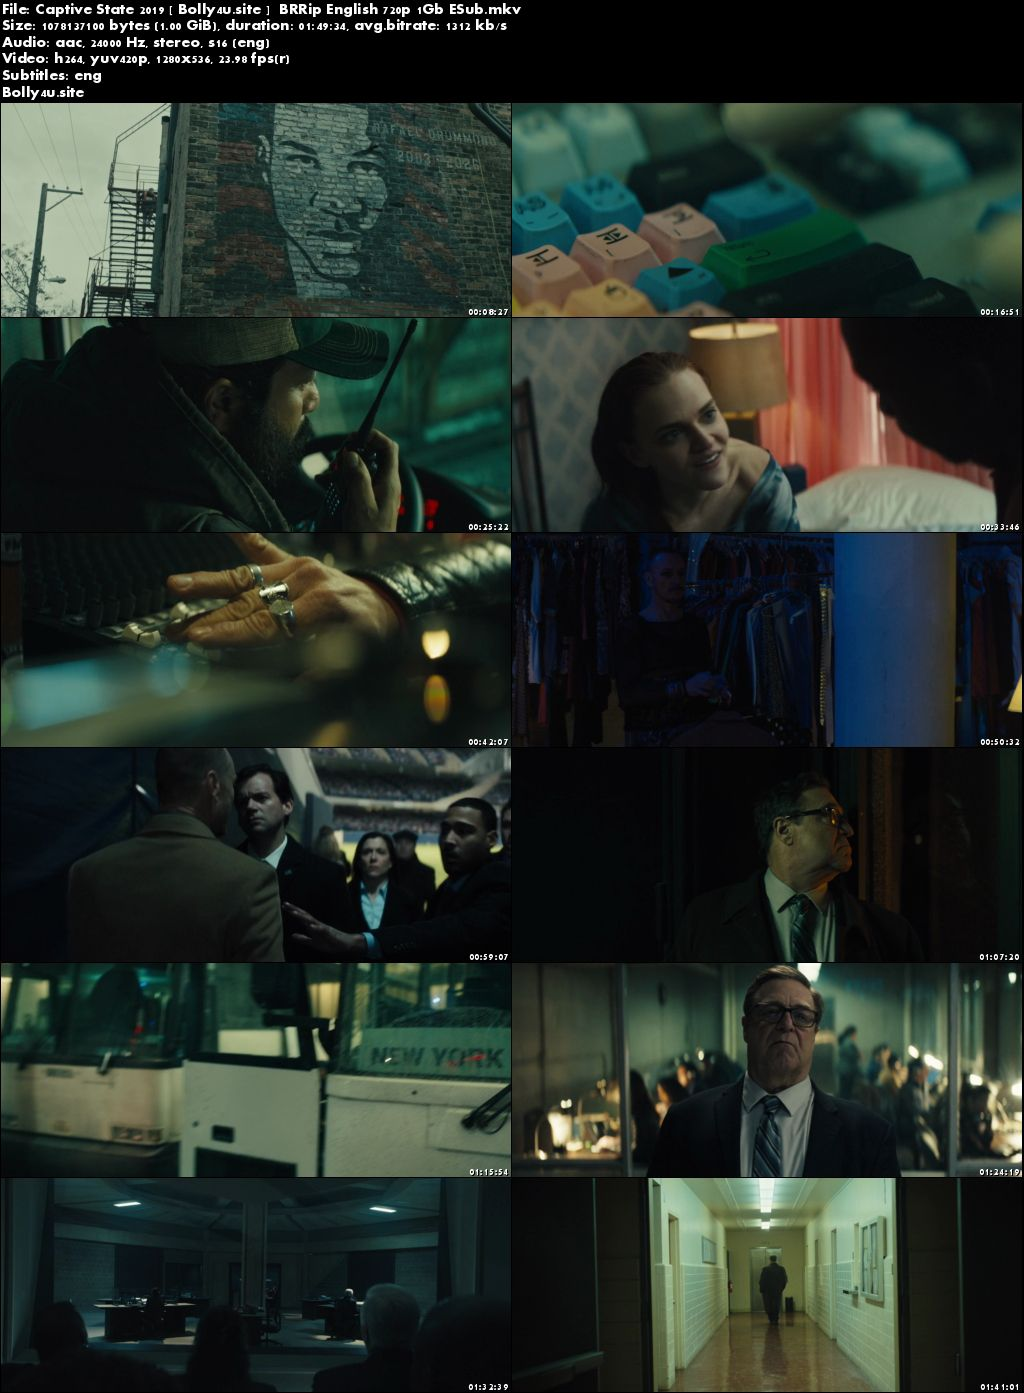 Captive State 2019 BRRip 1GB English 720p ESub Download